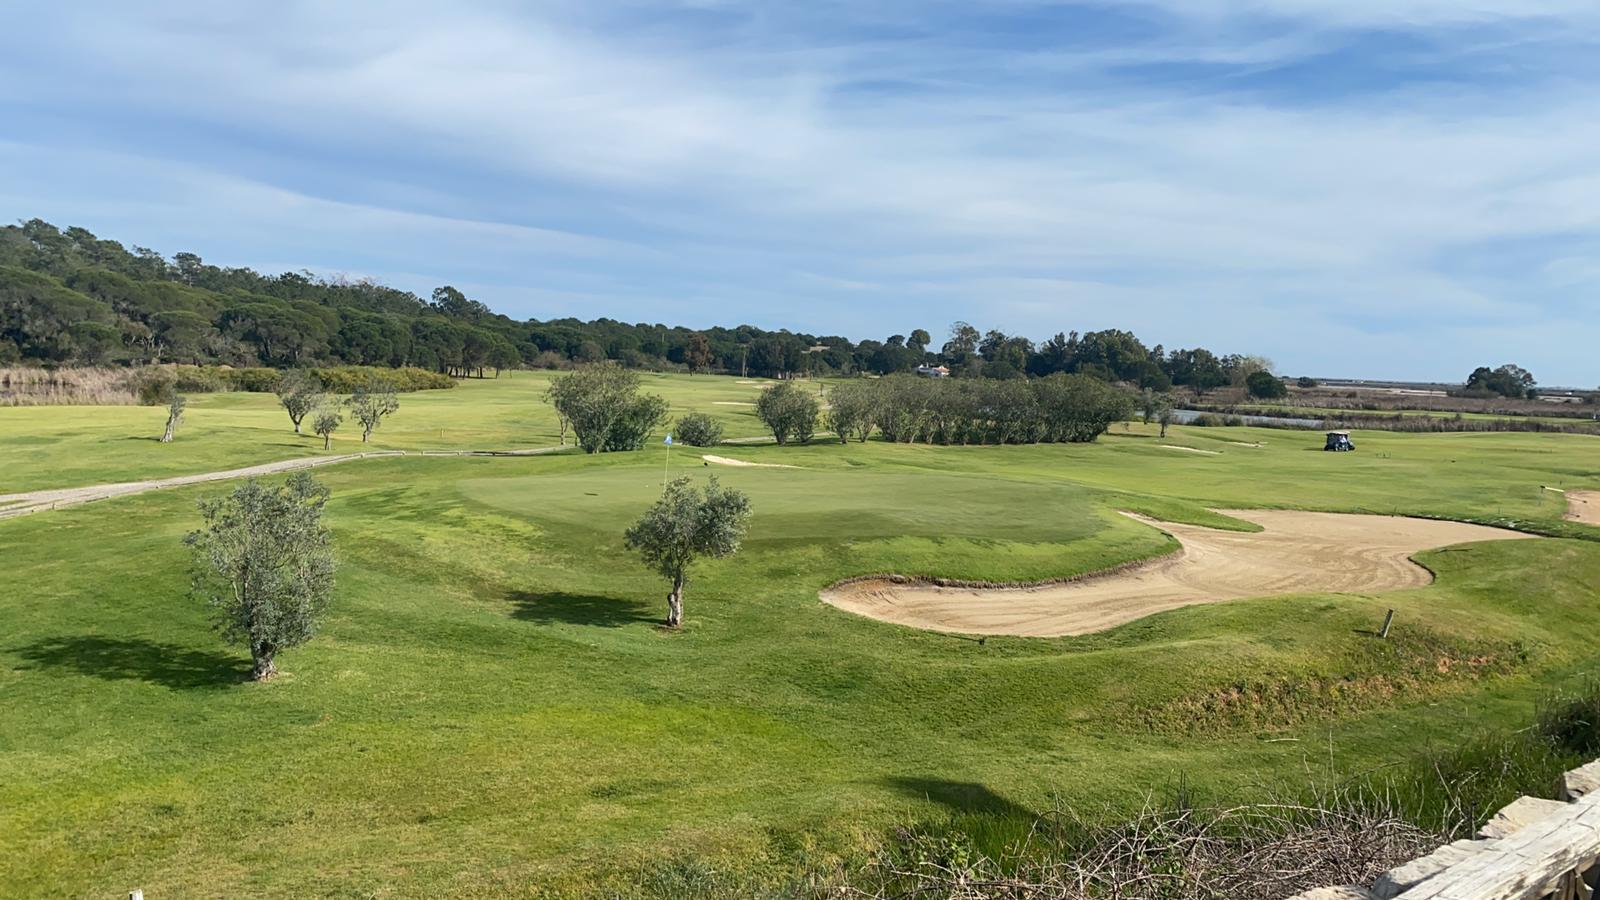 Long Term Rental in Quinta do Lago with Fabulous Golf and Country Views – 4 Bedroom Luxury Townhouse with fabulous golf views, private garden and communal pool, Central Algarve, Algarve Golden Triangle